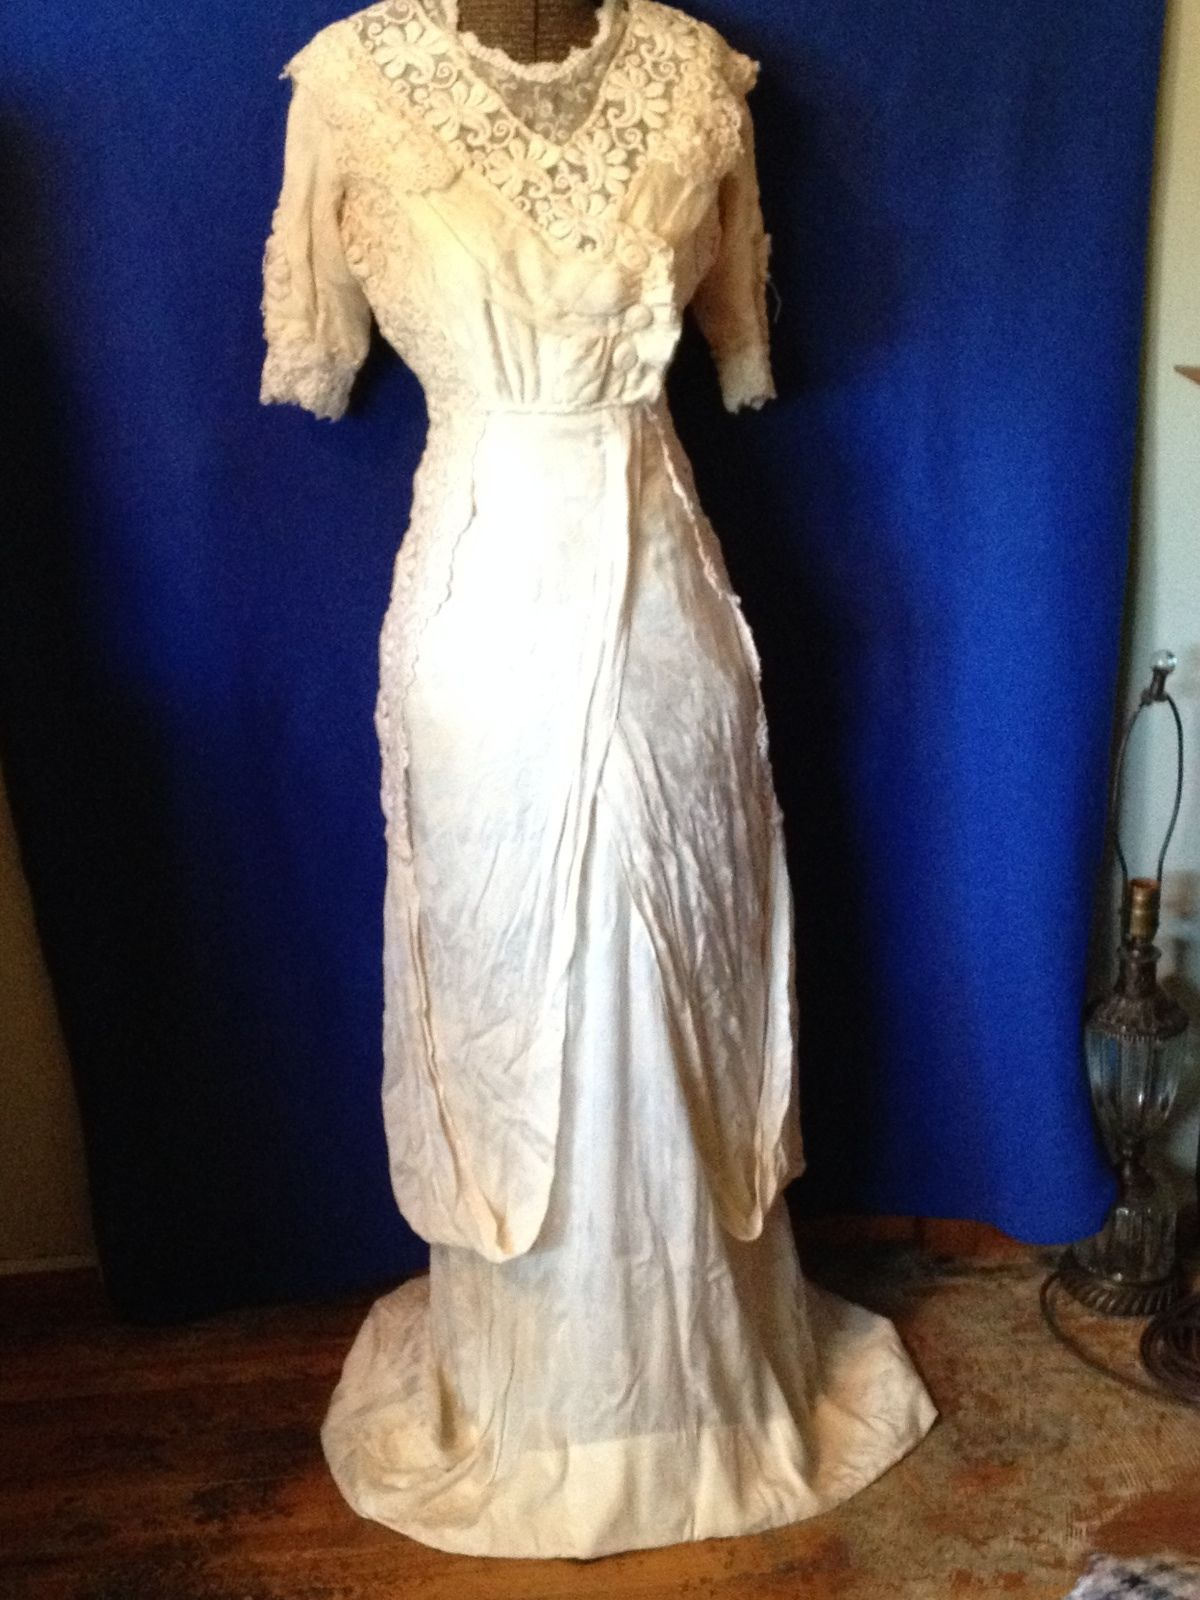 An edwardian wedding dress with irish lace such as travelers would